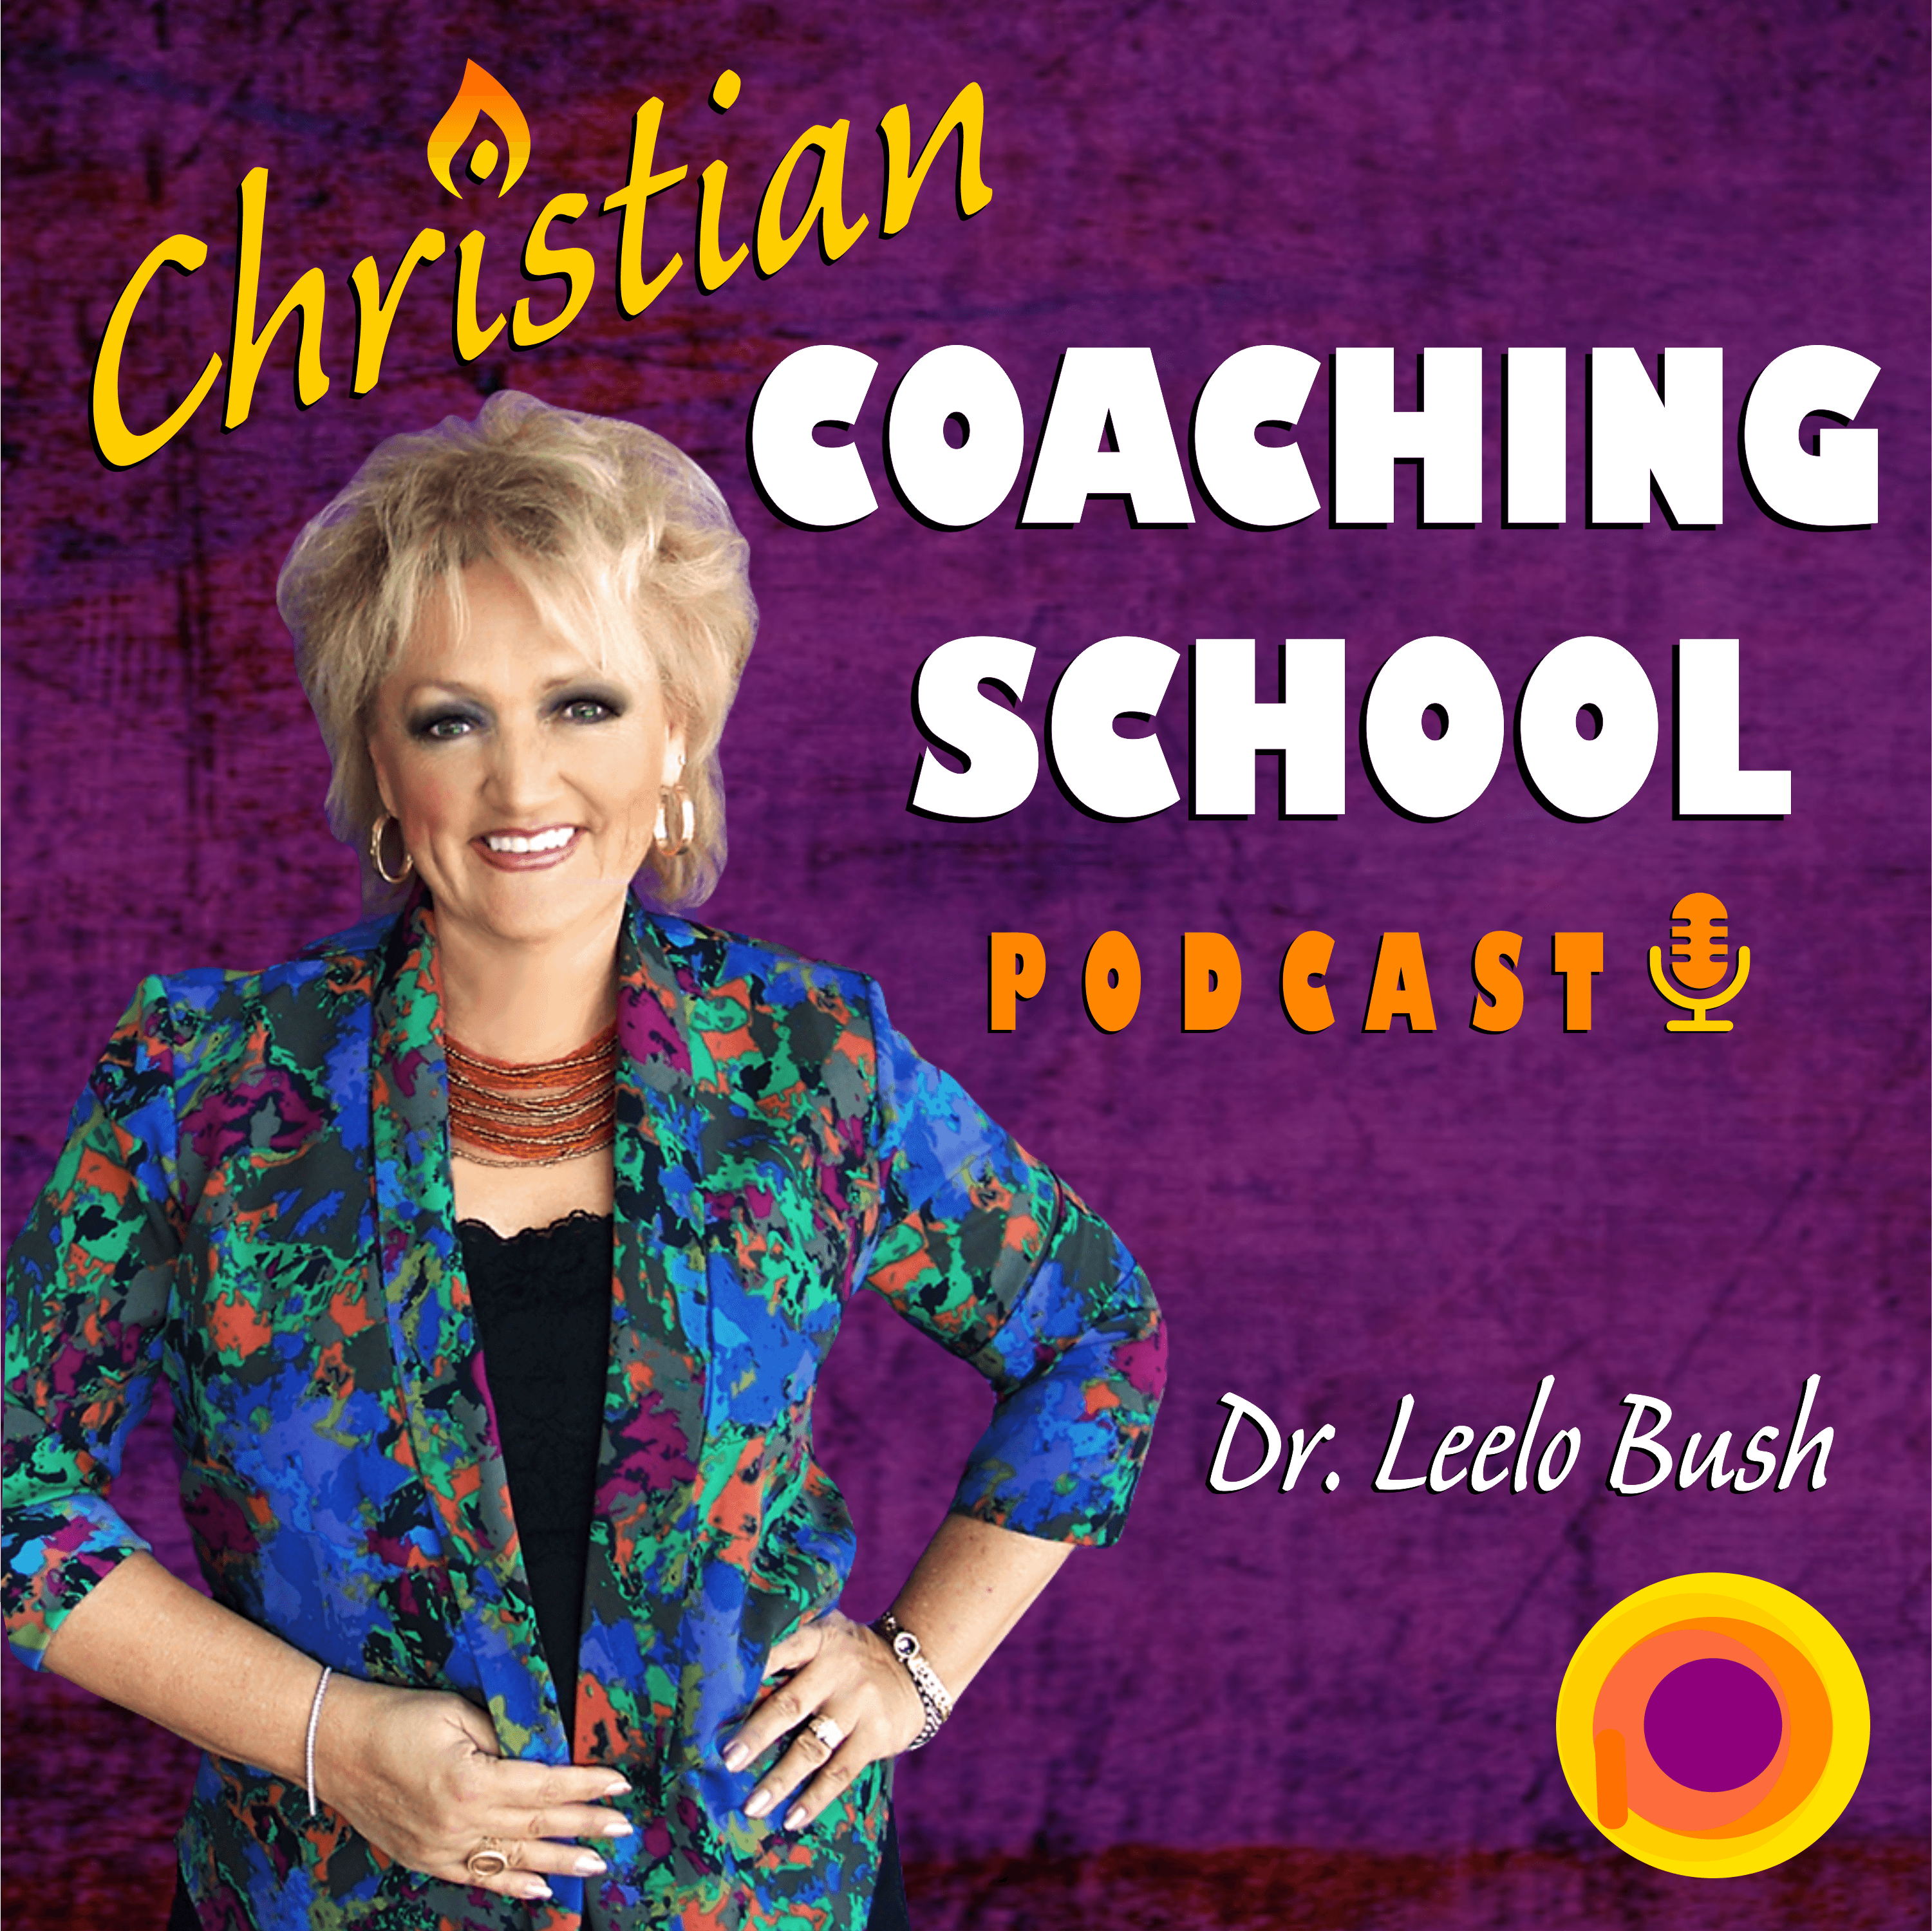 Christian Coaching School Podcast https://pccca.org